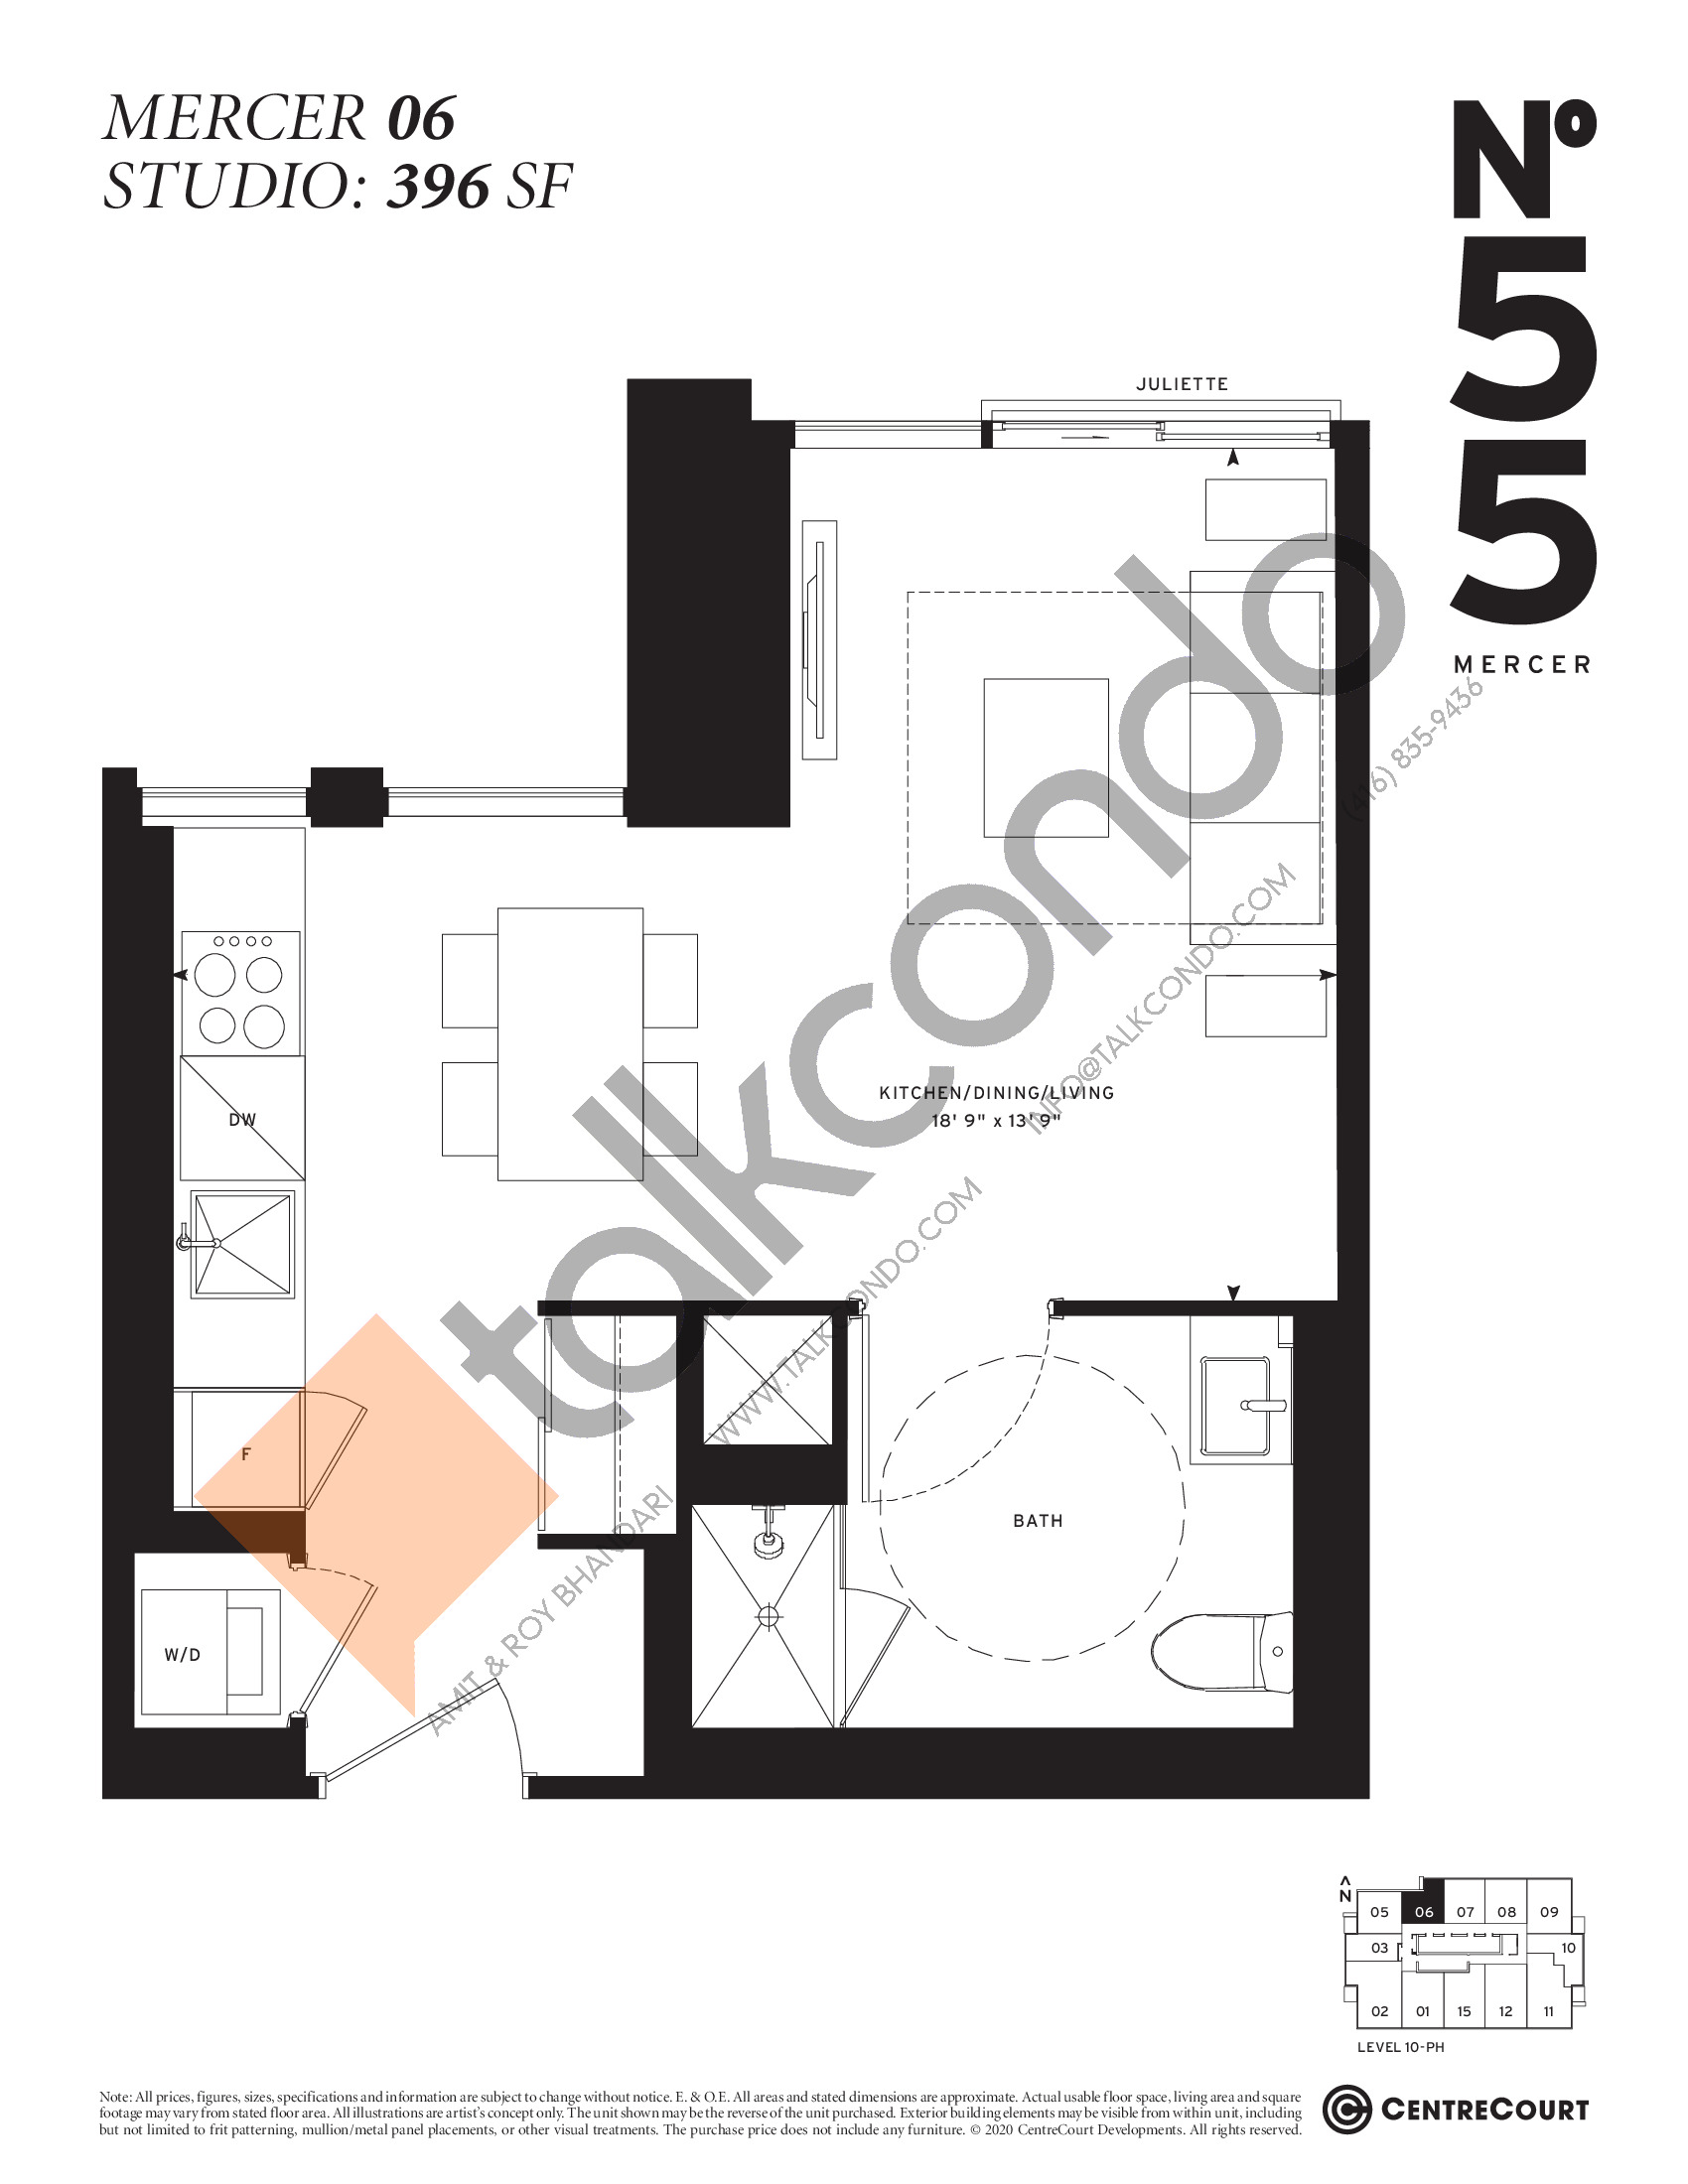 Mercer 06 Floor Plan at No. 55 Mercer Condos - 396 sq.ft